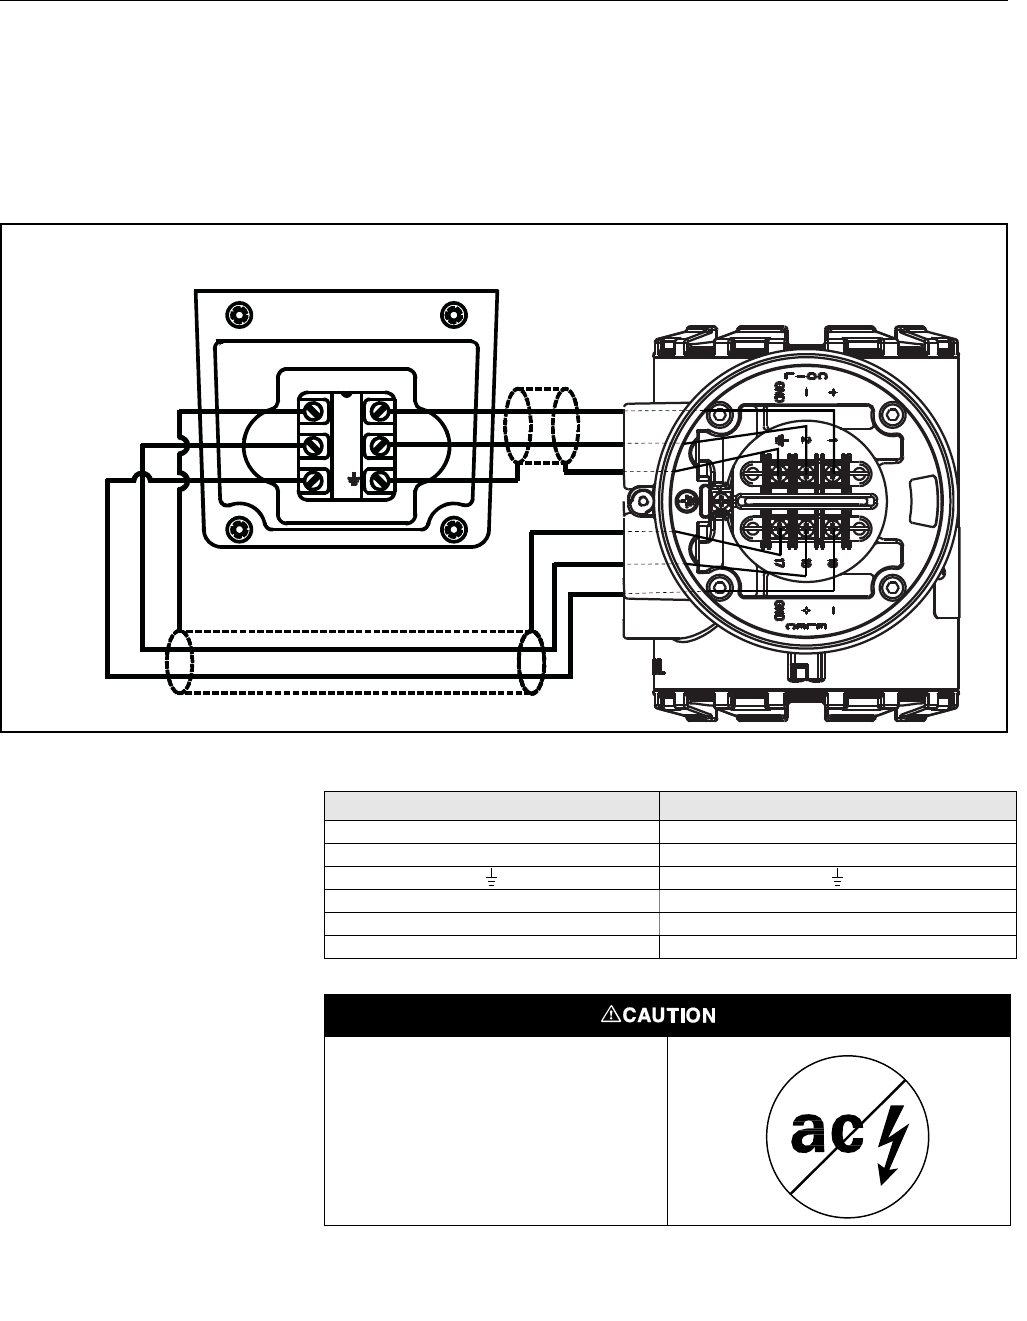 4cb8a751 c526 465f 9493 713bf7e156ff bg82 page 130 of emerson oxygen equipment rosemount 8732 user guide rosemount temperature transmitter wiring diagram at soozxer.org